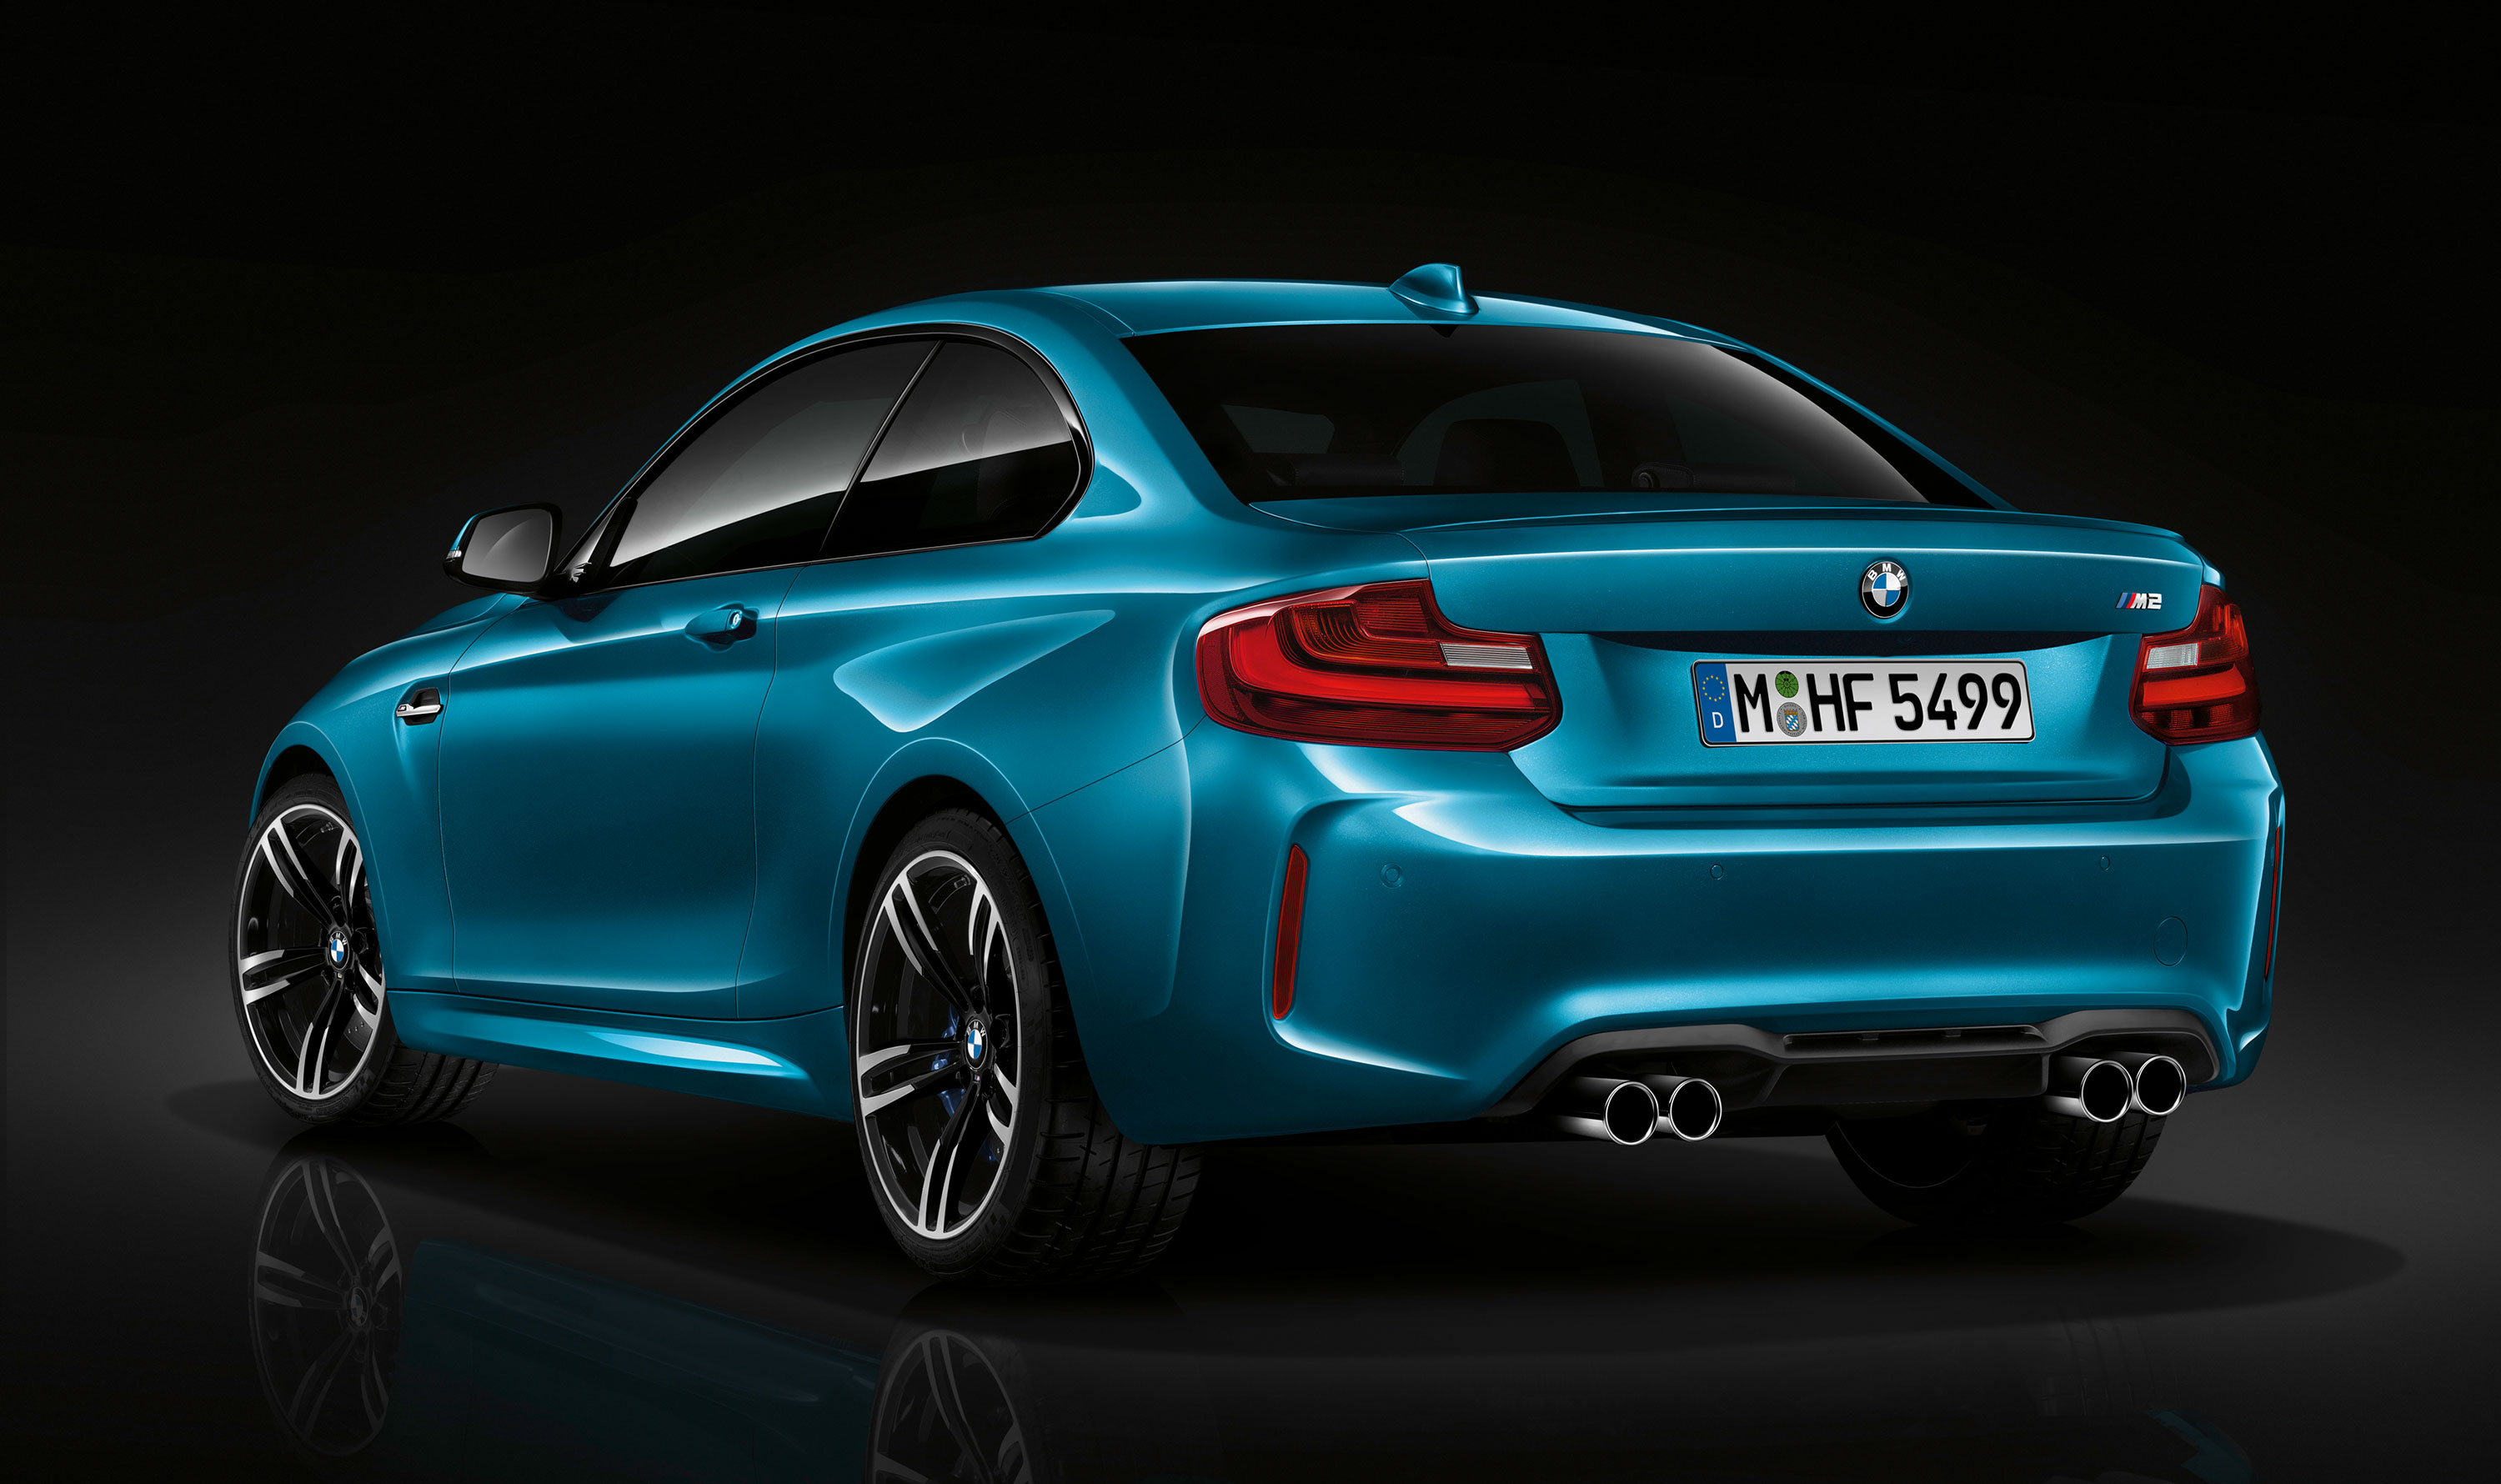 Bmw 435i zhp coupe 2016 pictures information amp specs - The 2016 Bmw M2 Is Available In Four Exterior Paint Finishes Long Beach Blue Metallic